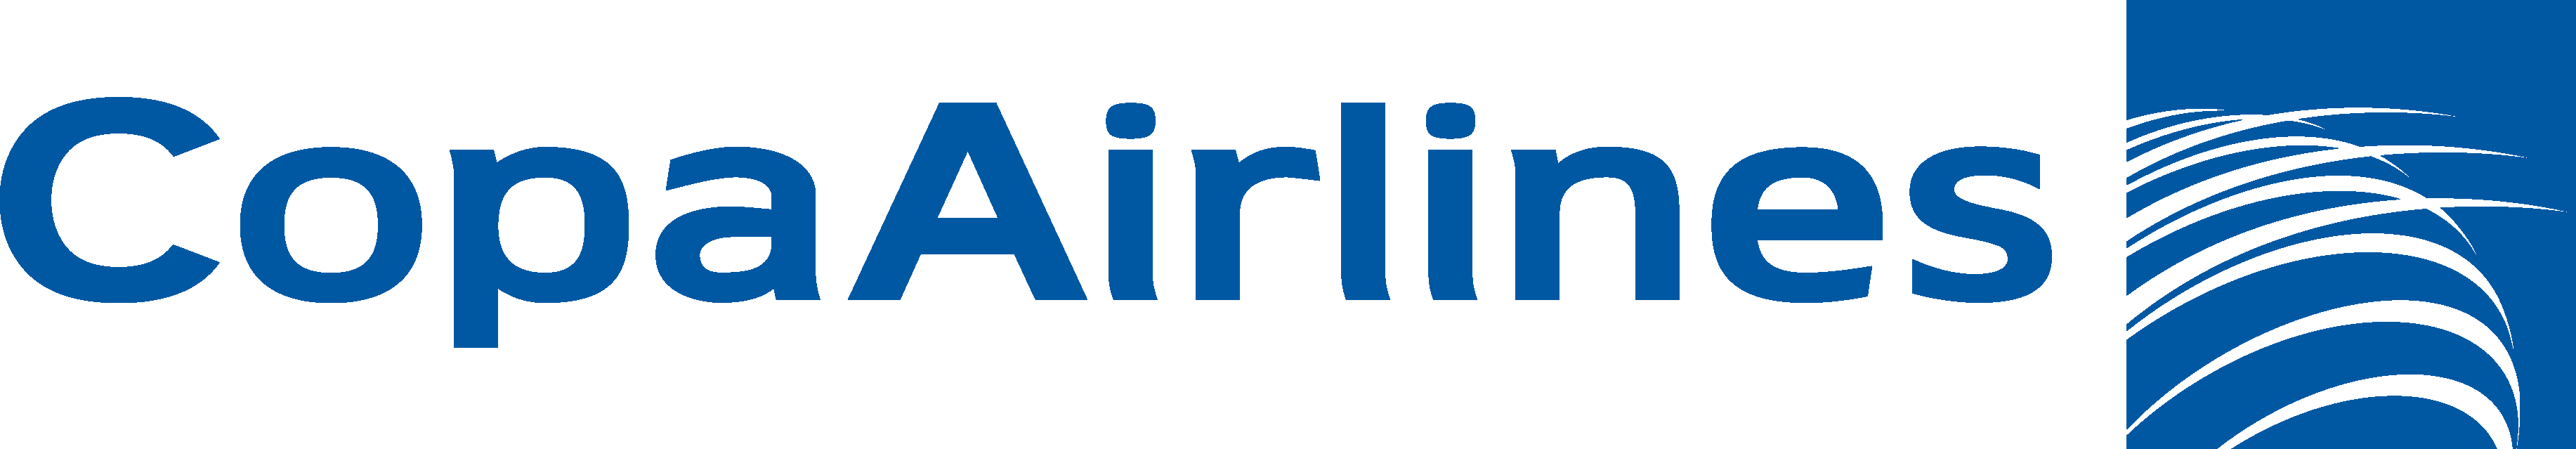 Copa Airlines Logo Vector Eps Free Download Logo Icons